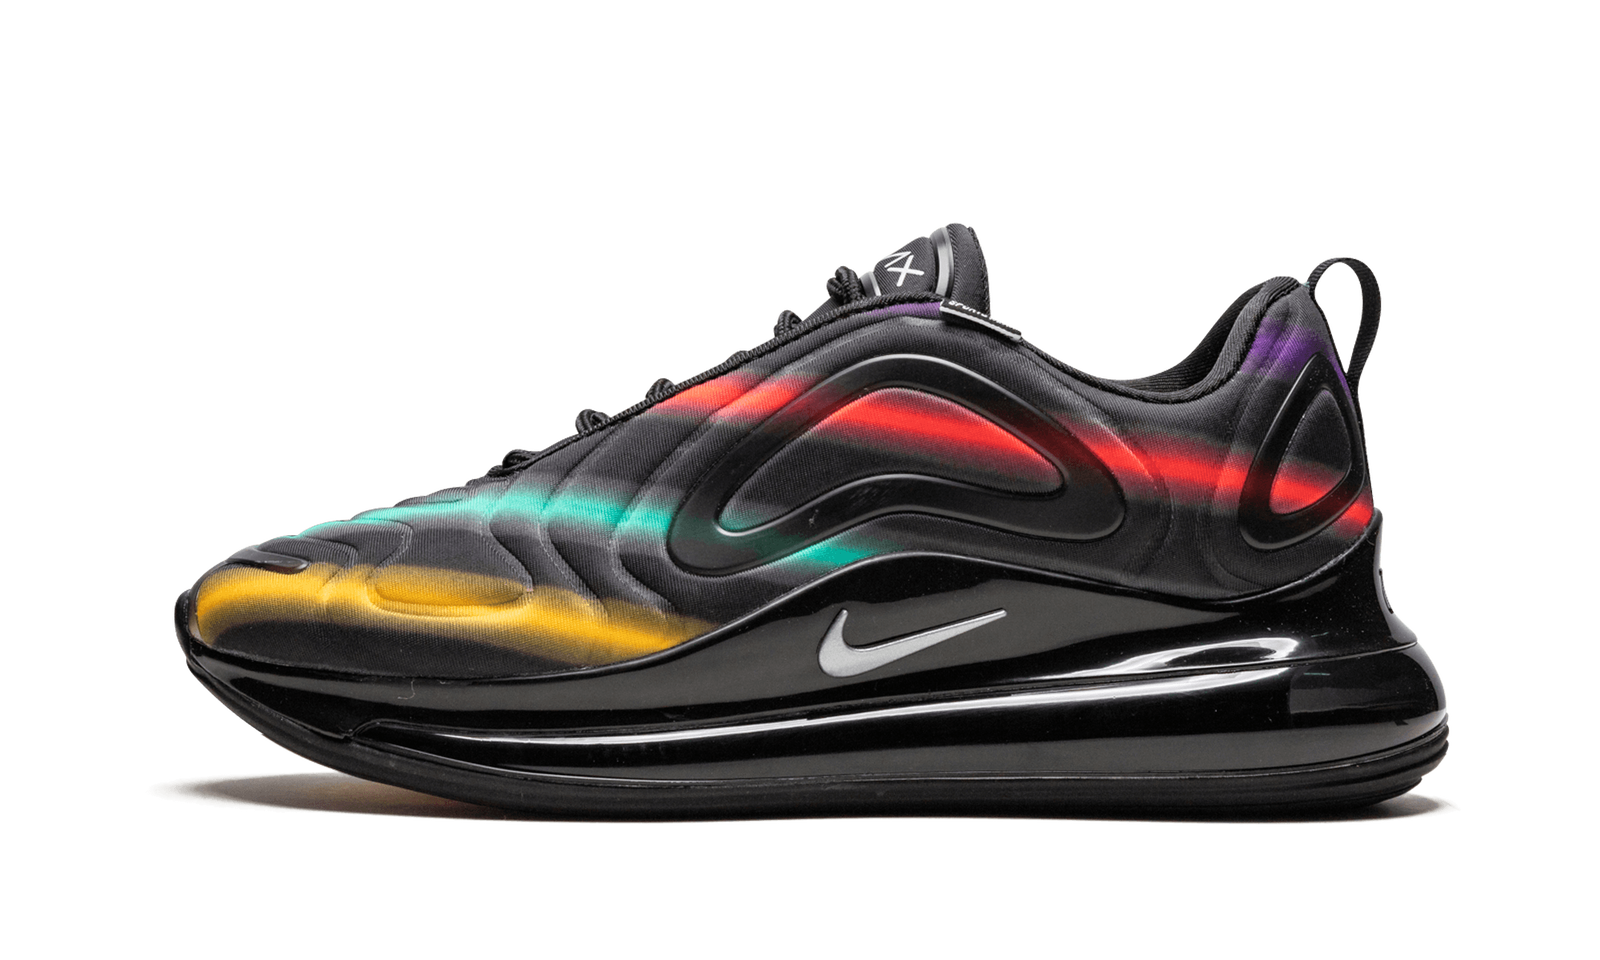 Nike Air Max 720 Black Neon Streaks